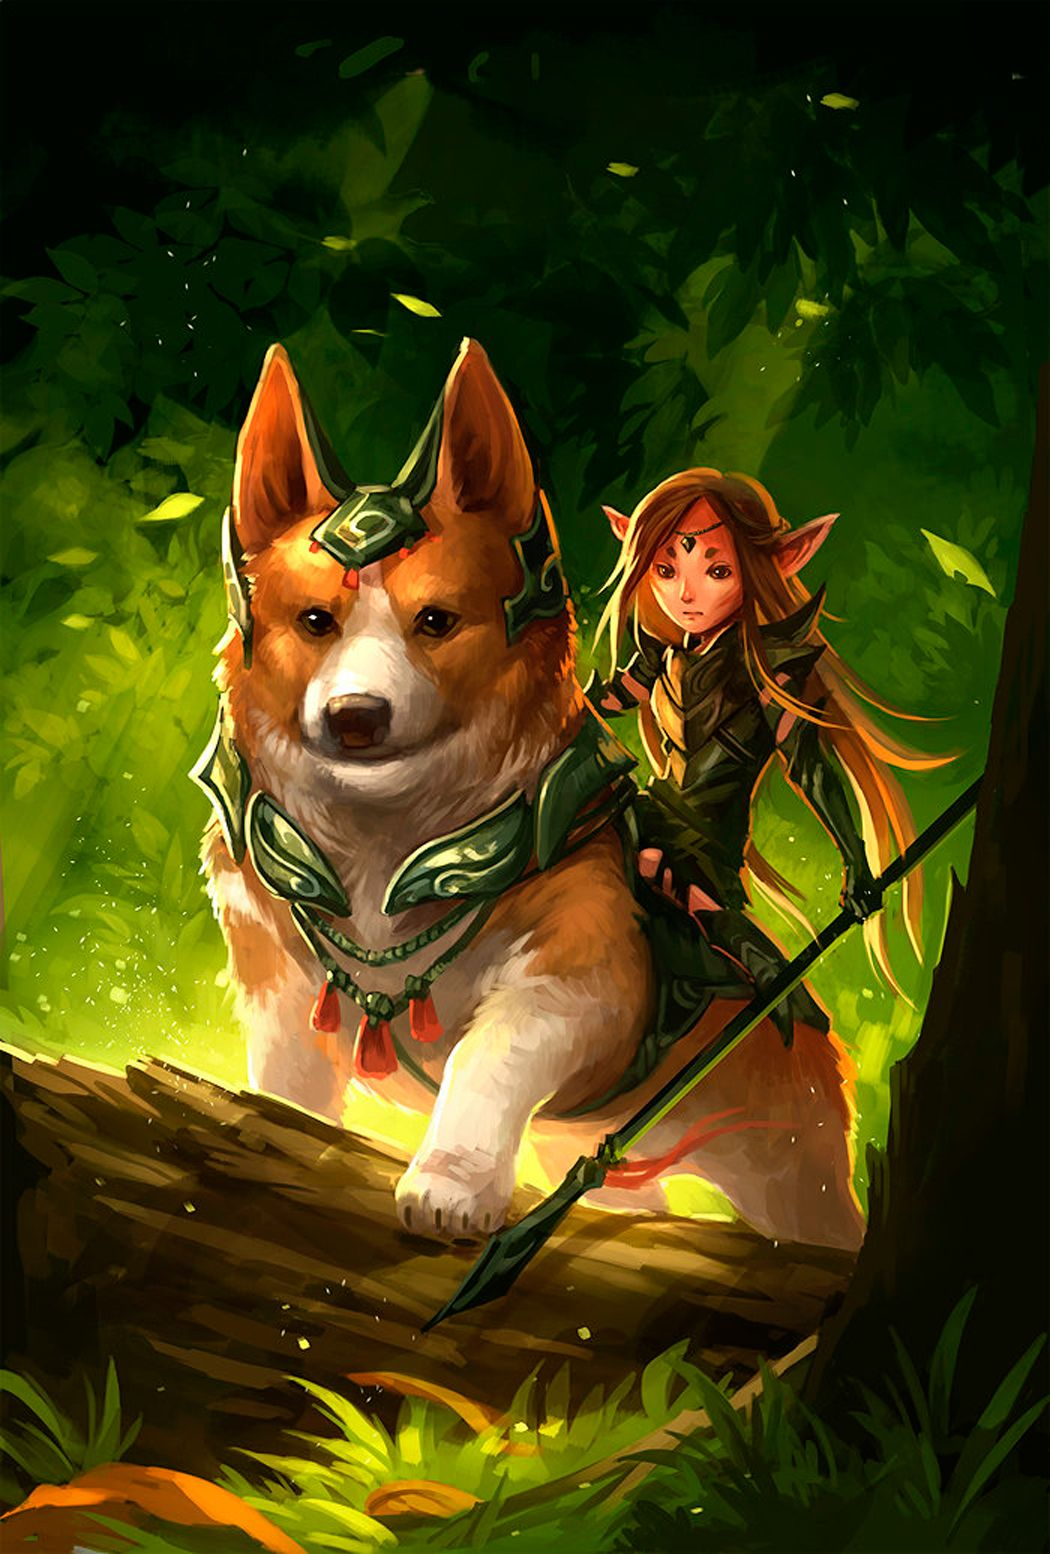 Corgi fairy mount love it corgis were the mounts of the fairies